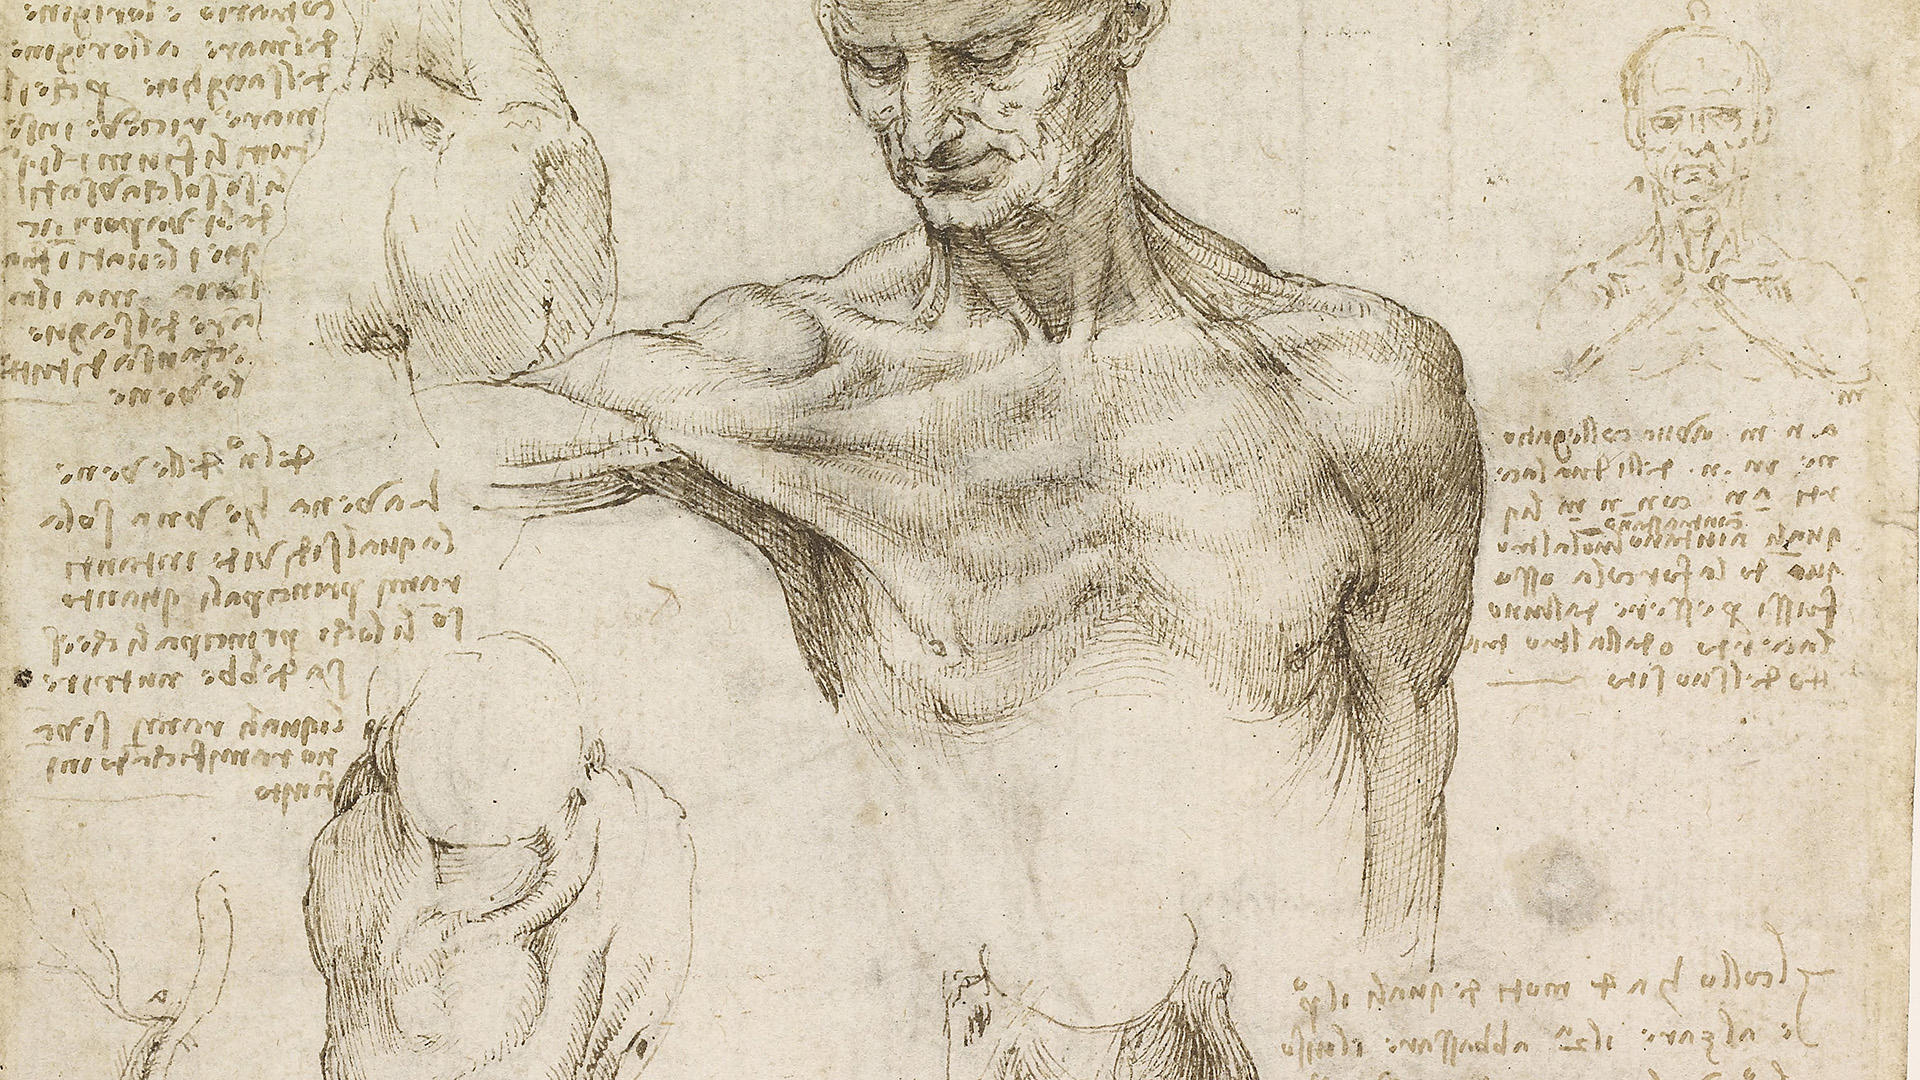 Anatomy professor uses 500-year-old da Vinci drawings to guide cadaver dissection